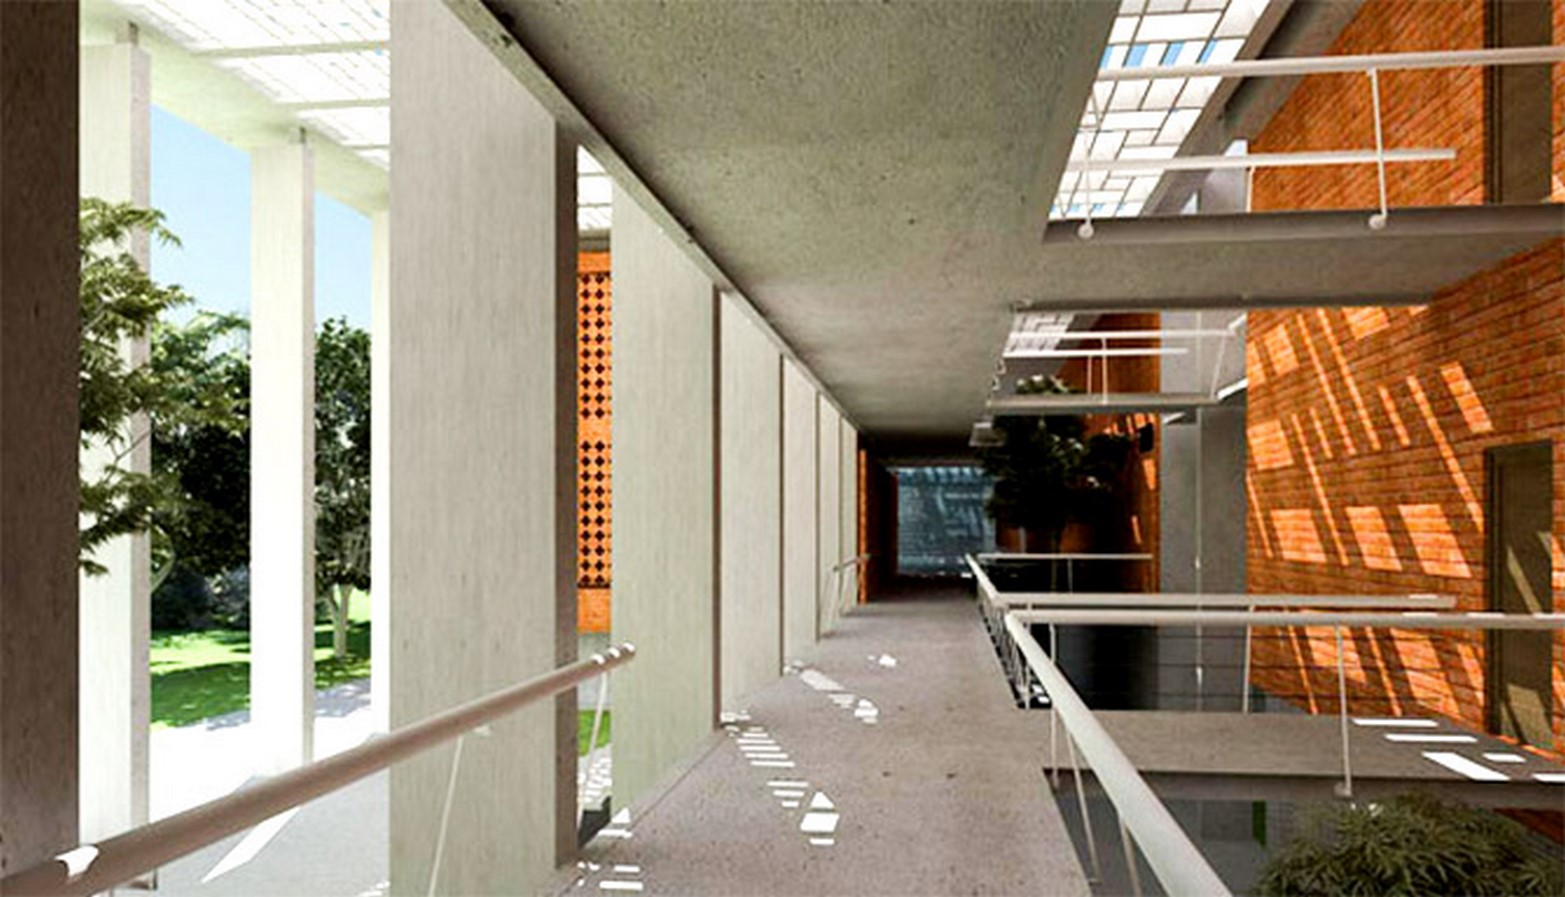 The Lalit Suri Hospitality School by Morphogenesis: In cohabitation with nature - Sheet5